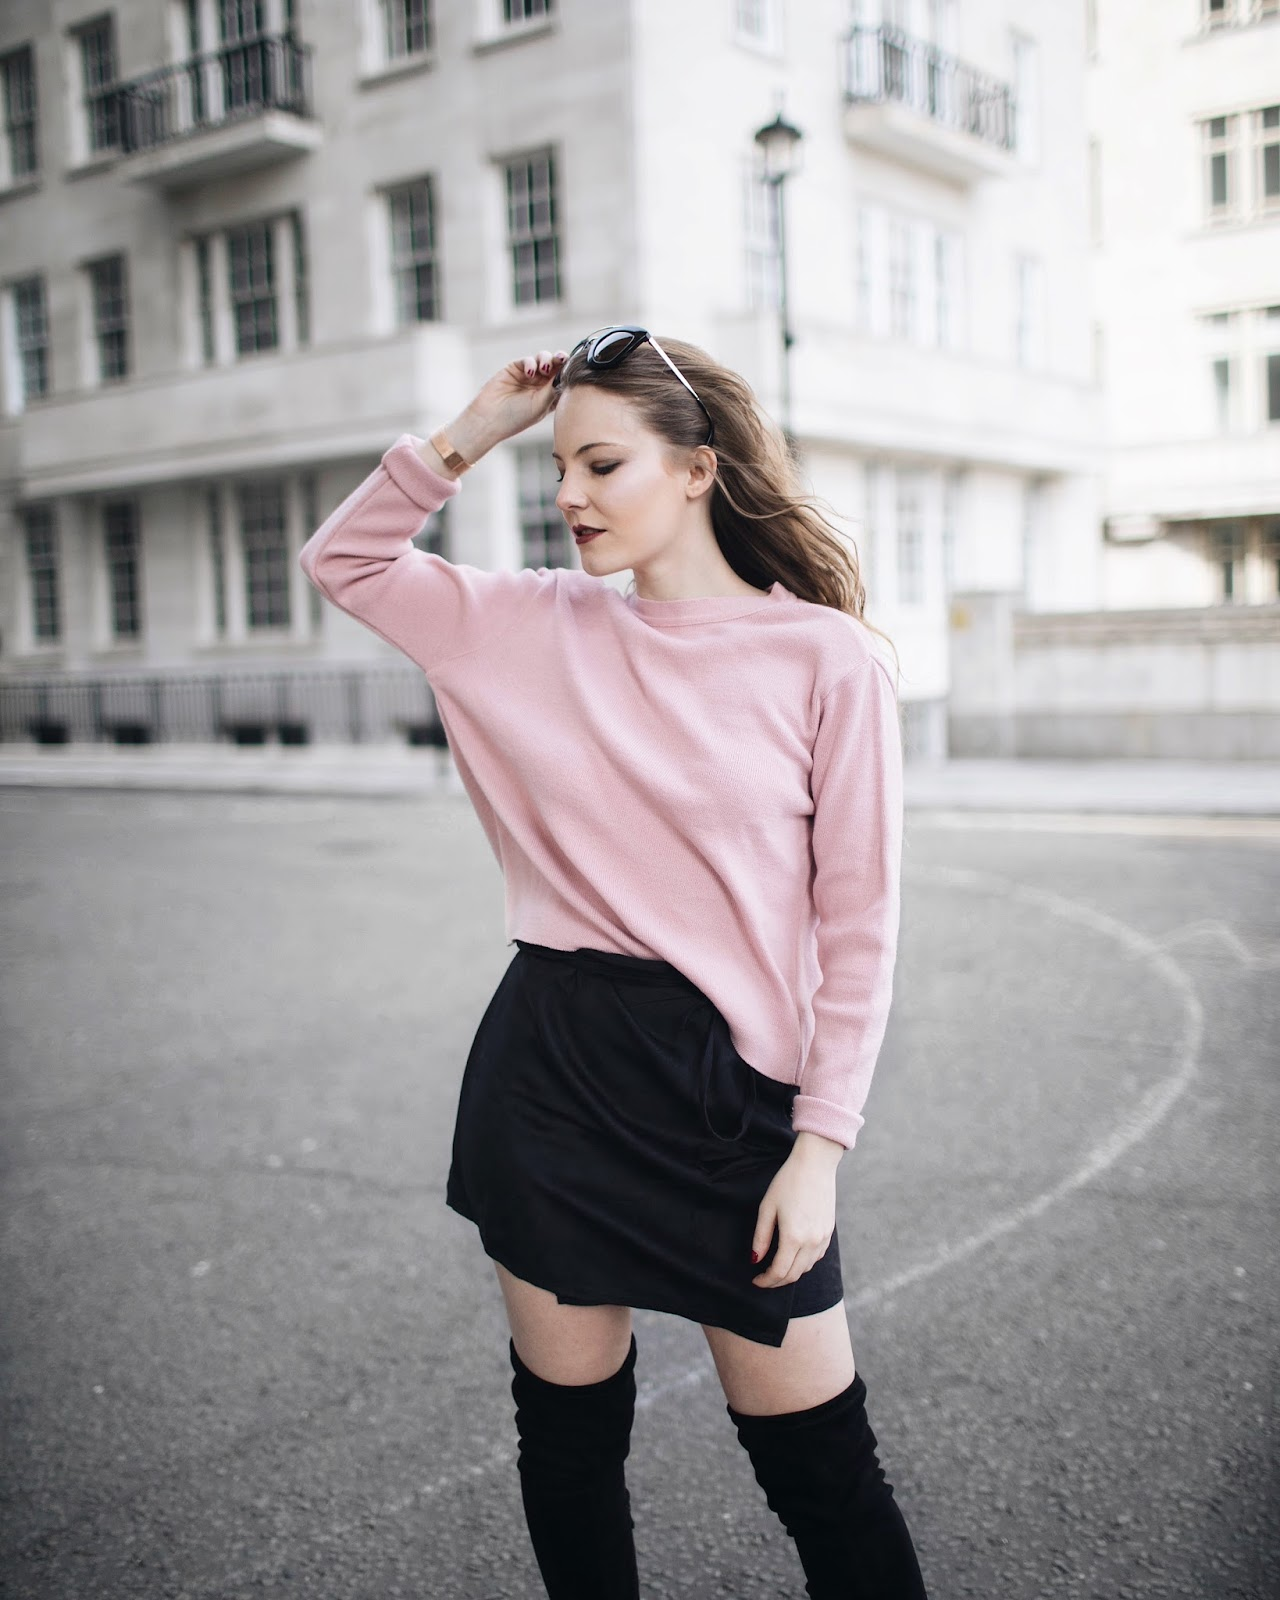 blogs on life, blogging changed me, blogging changed life, i want to start a blog, blogging changed my life, public desire thigh high boots, gucci bag, pink jumper, rose jumper, gucci, london blogger, london fashion blogger, london based fashion blogger